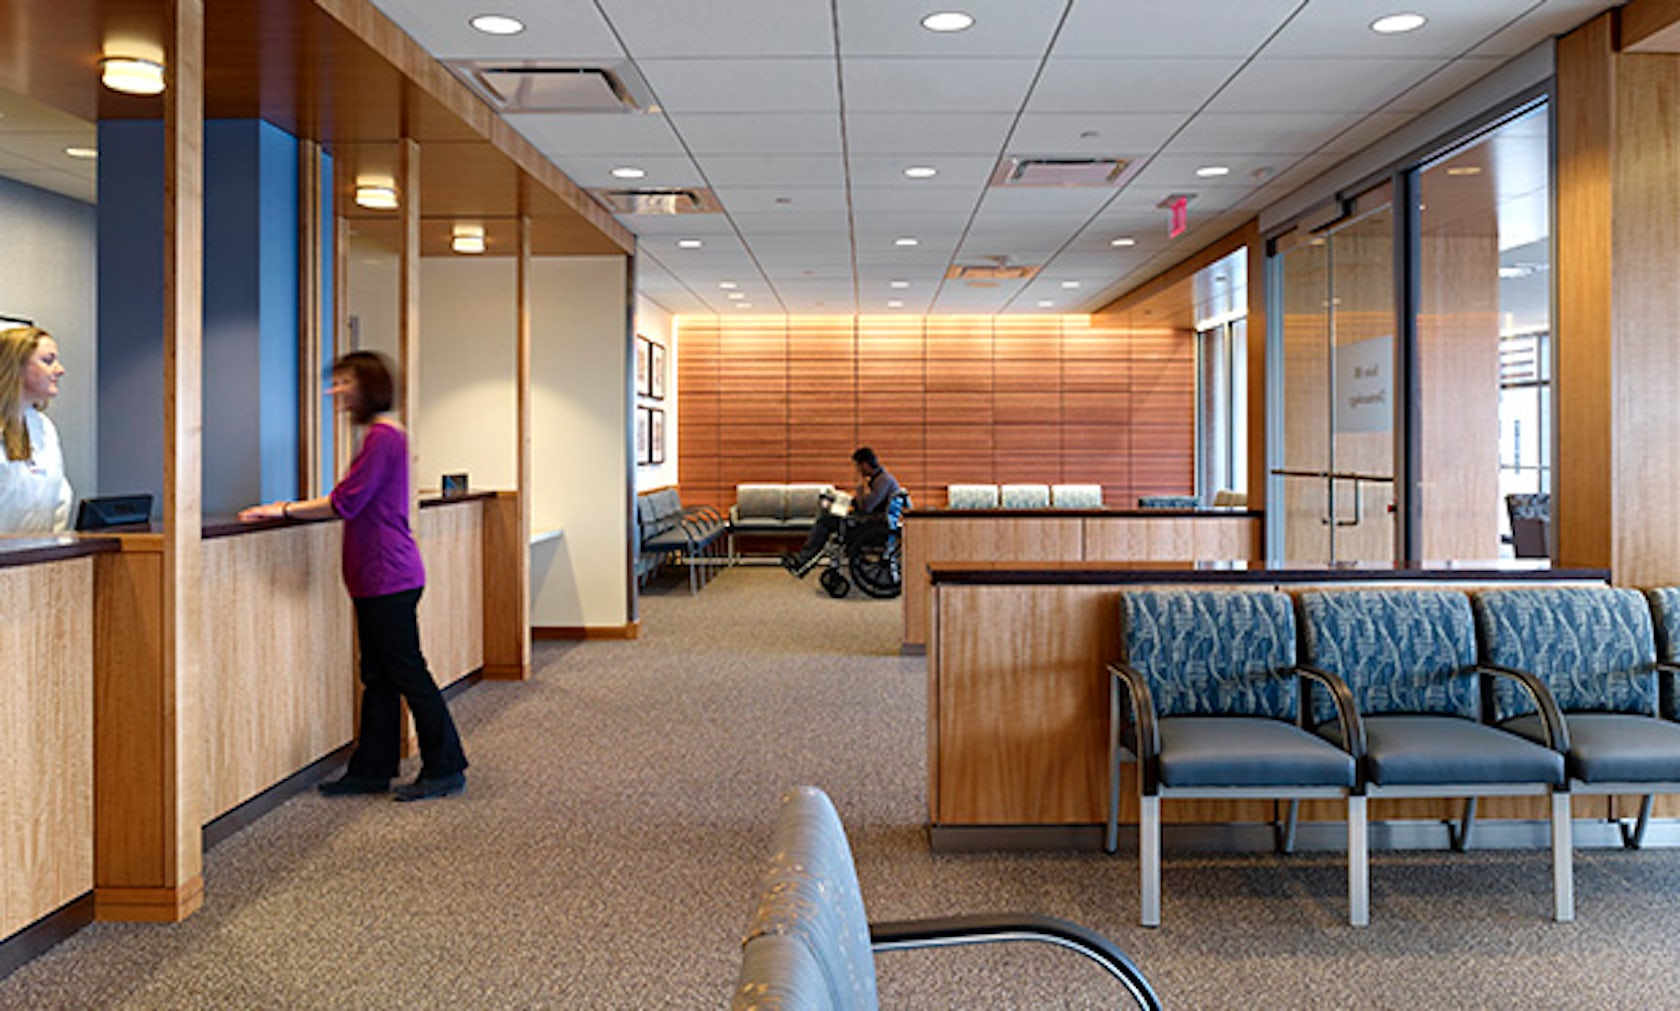 Carl j and ruth shapiro ambulatory care center boston - Us department of the interior jobs ...